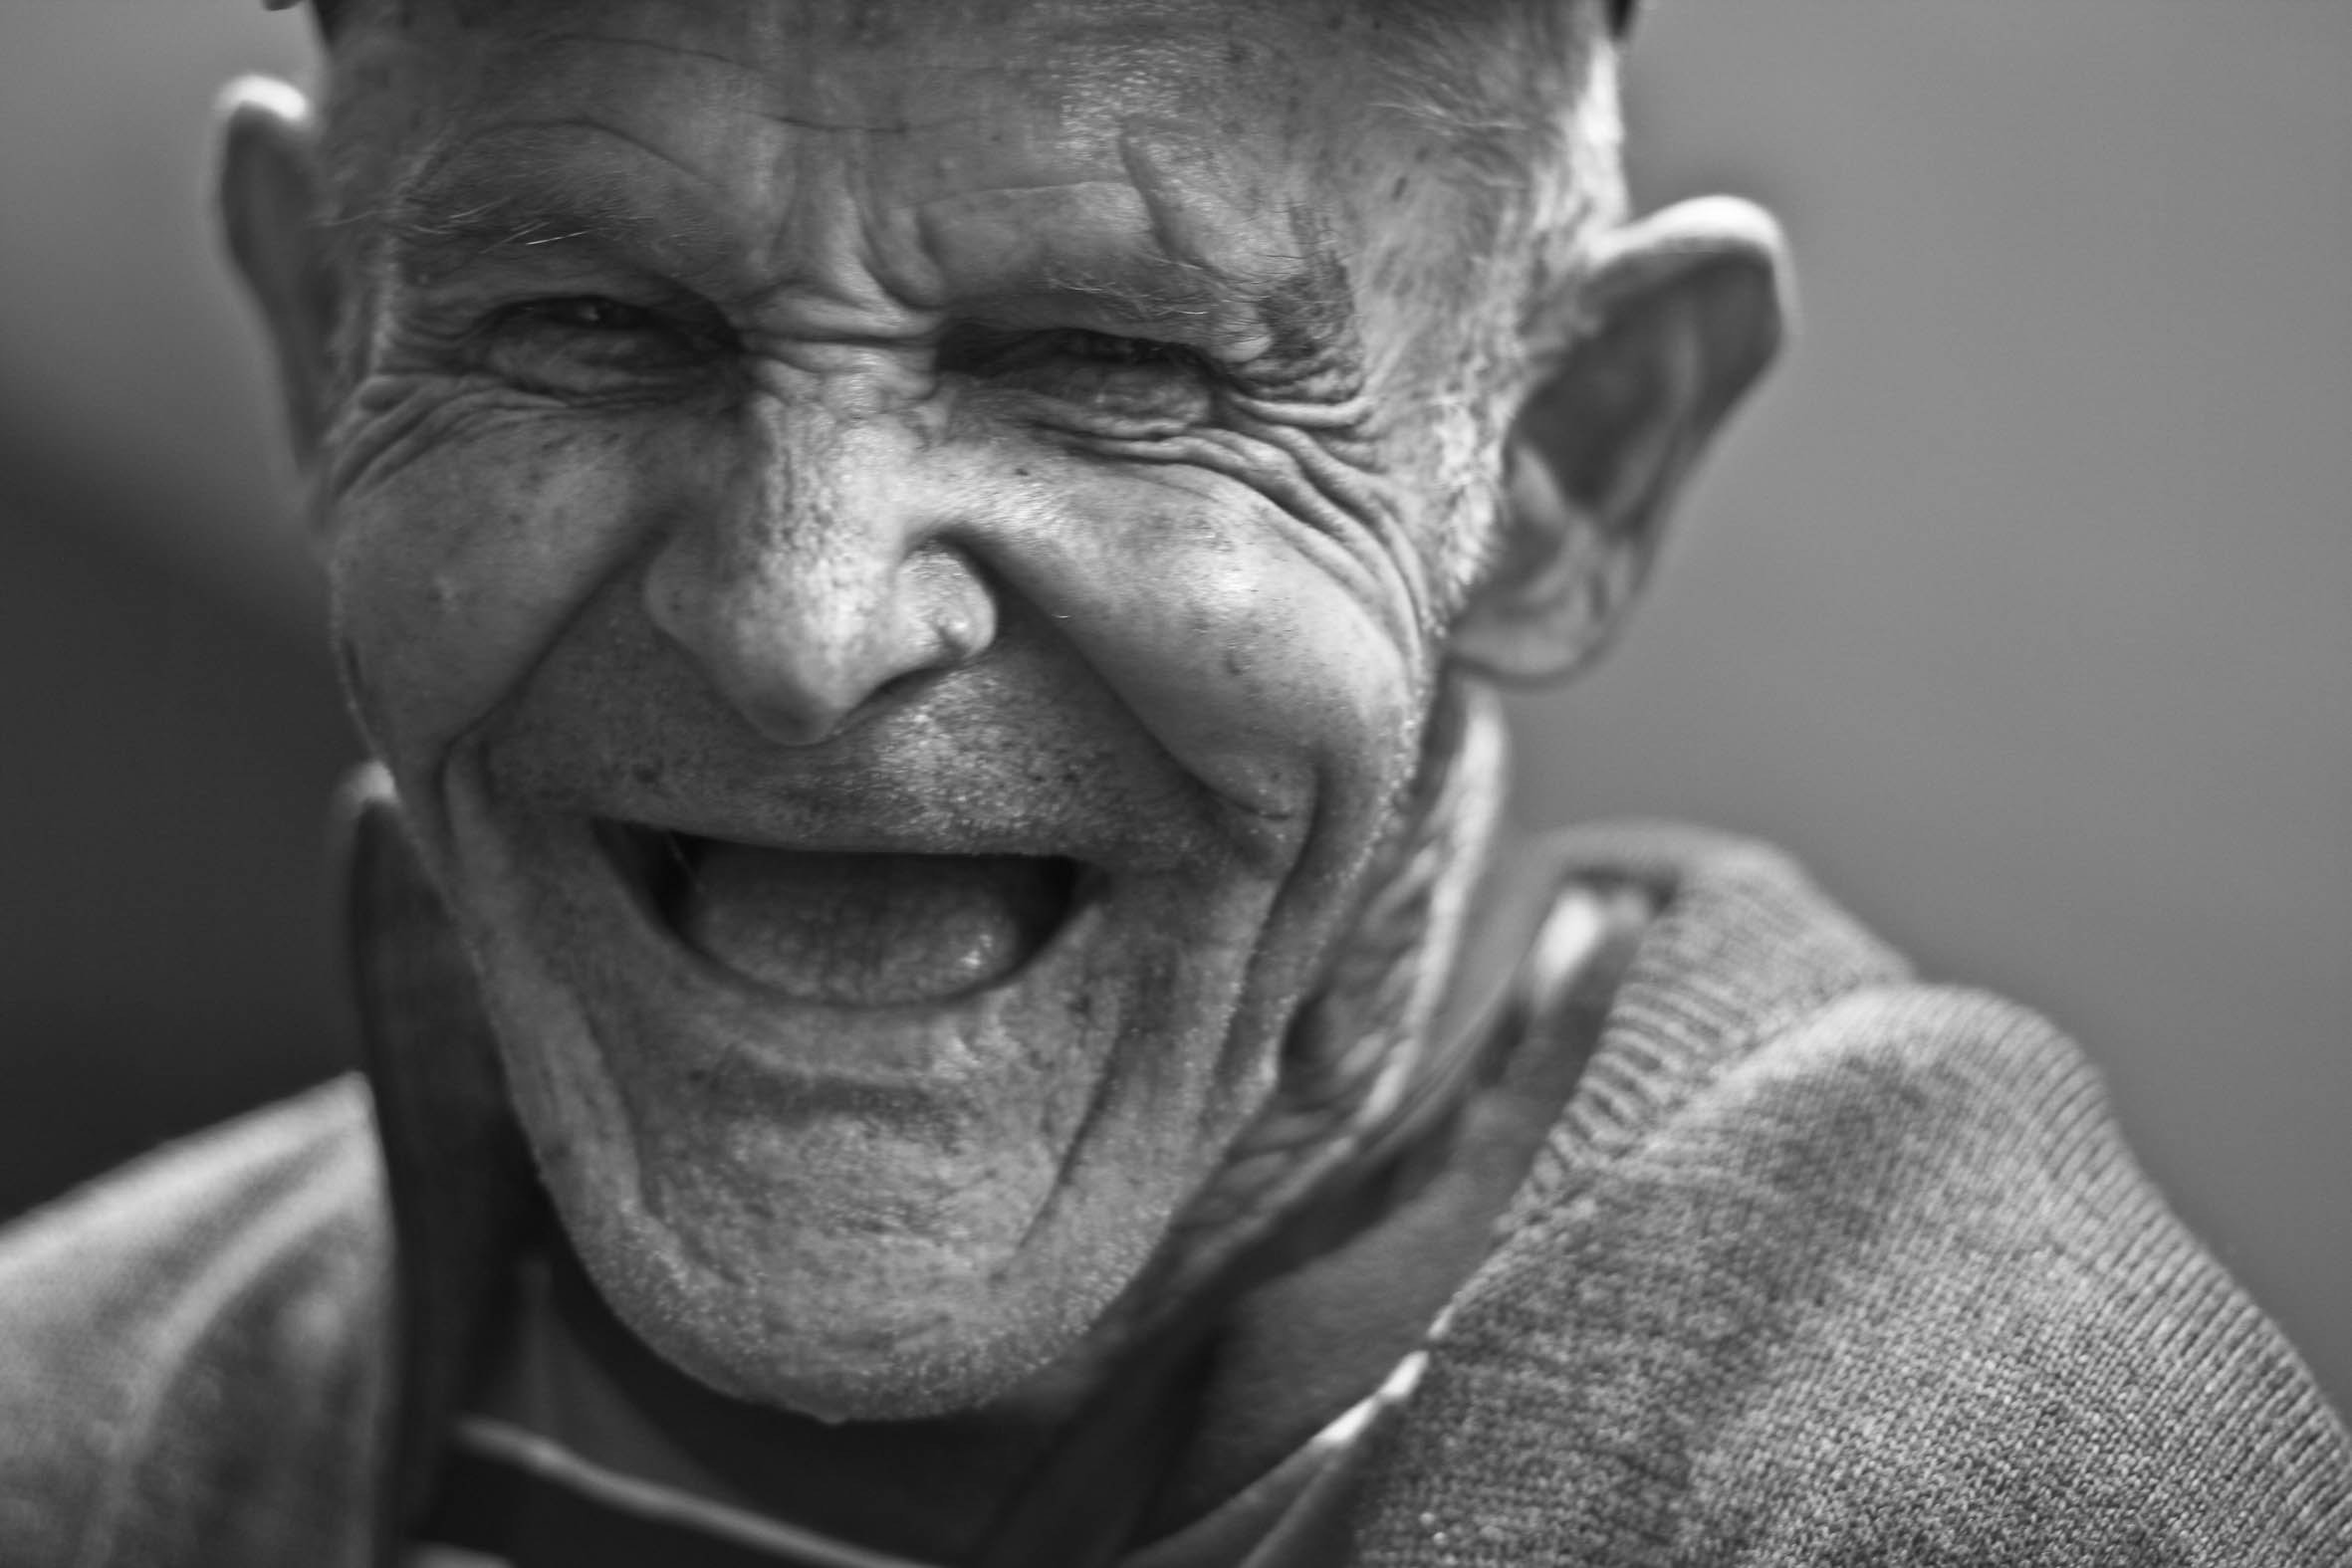 A jolly old man. | Source: Pexels